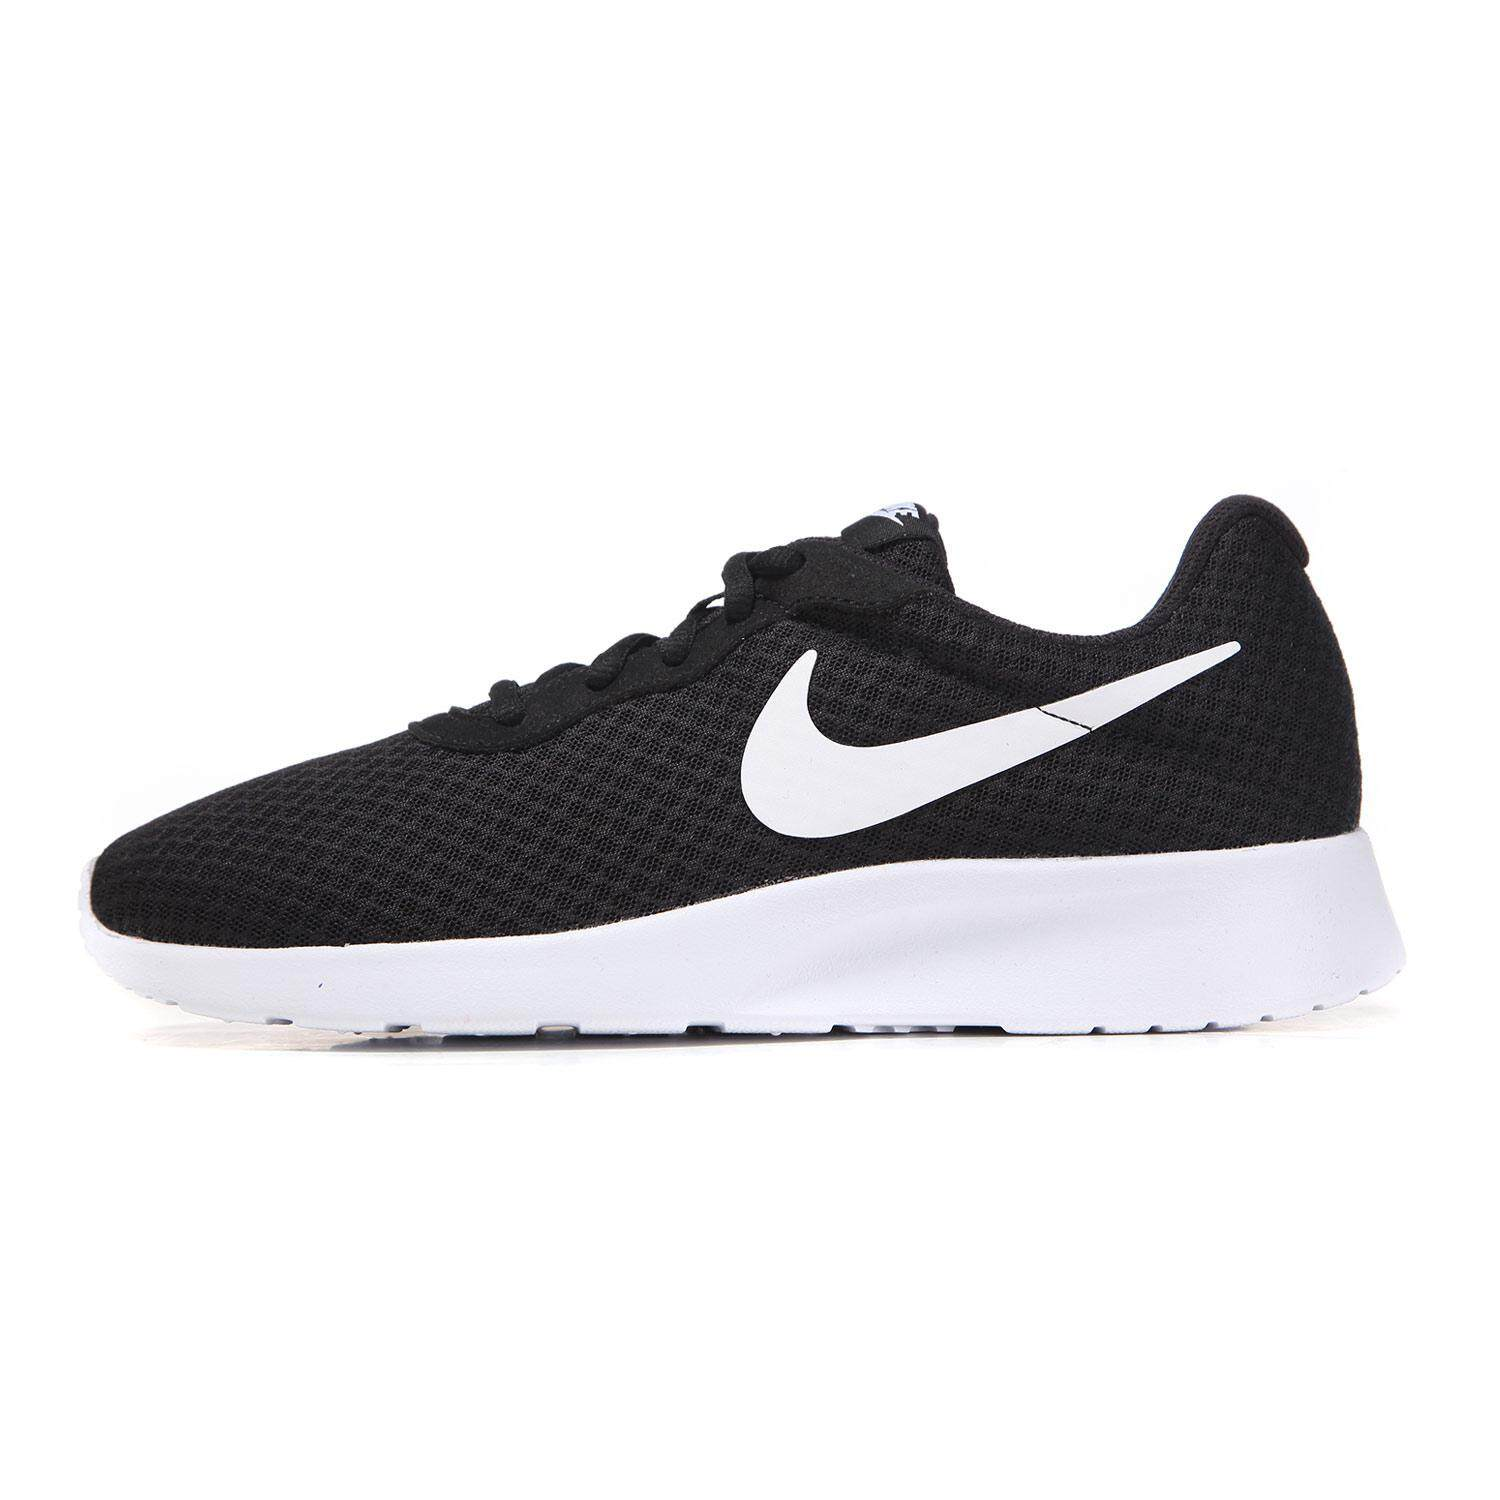 pretty nice e301b 778d4 Nike Shoes for Men Philippines - Nike Mens Fashion Shoes for sale - prices    reviews   Lazada